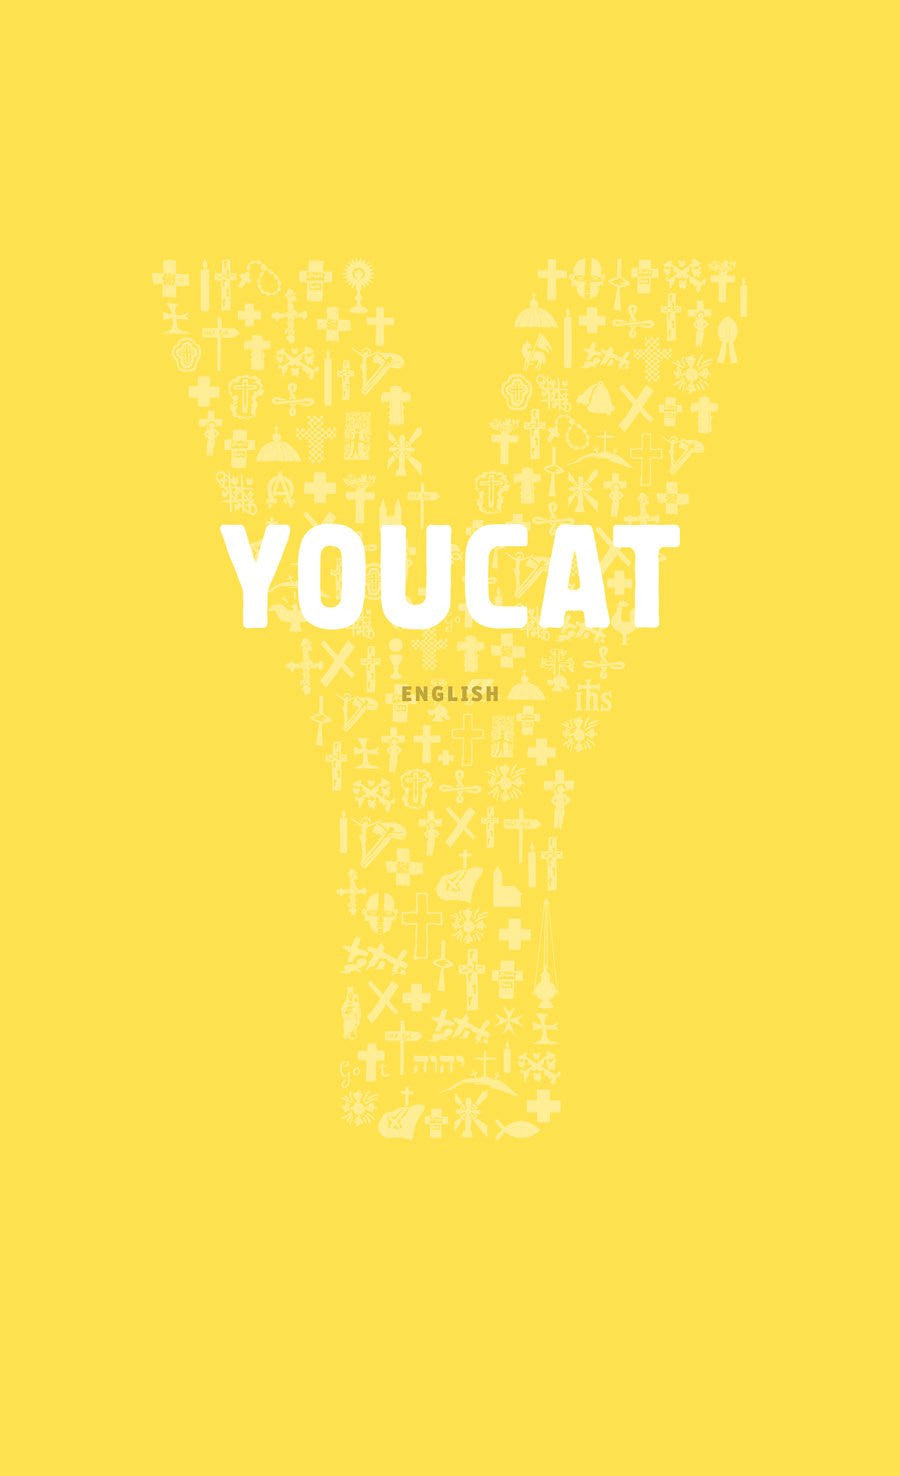 YOUCAT! CATECHISM 4 TEENS & HS